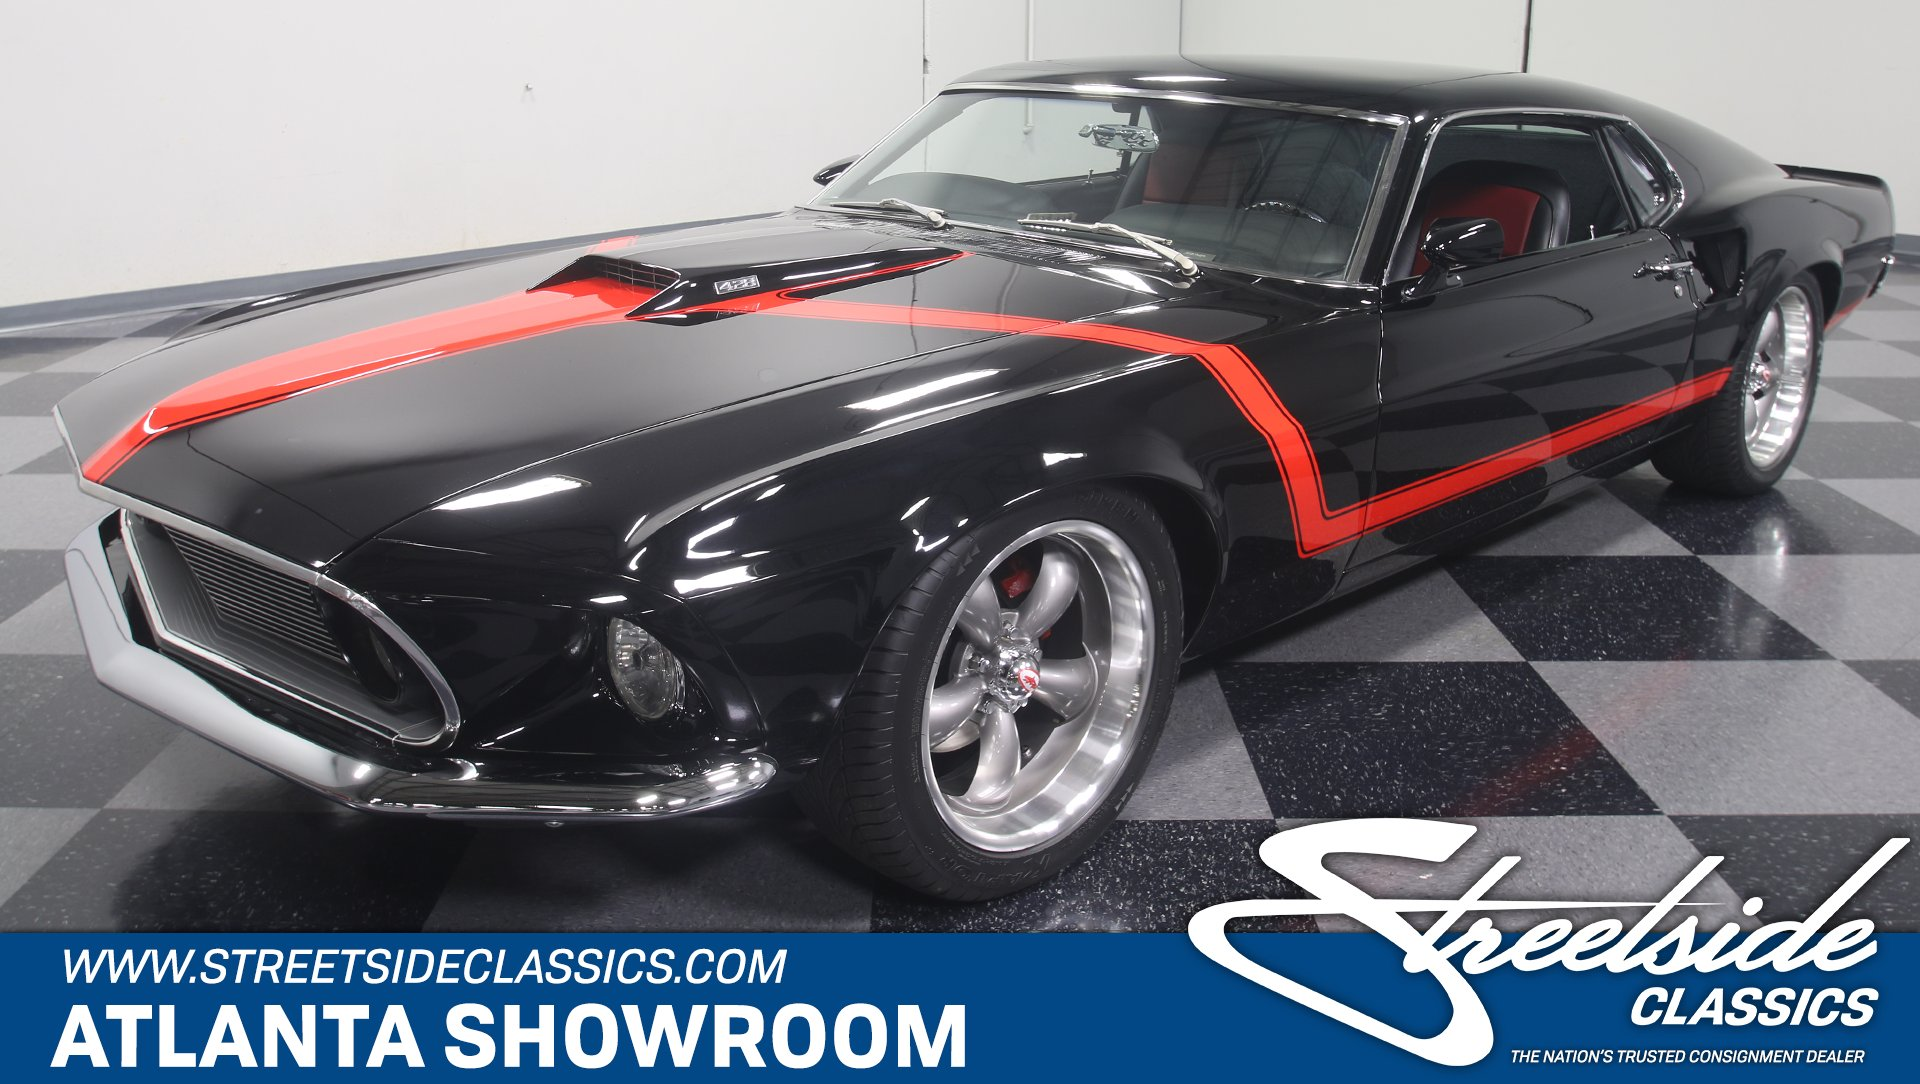 1969 Ford Mustang Fastback Restomod for sale #111841 | Motorious